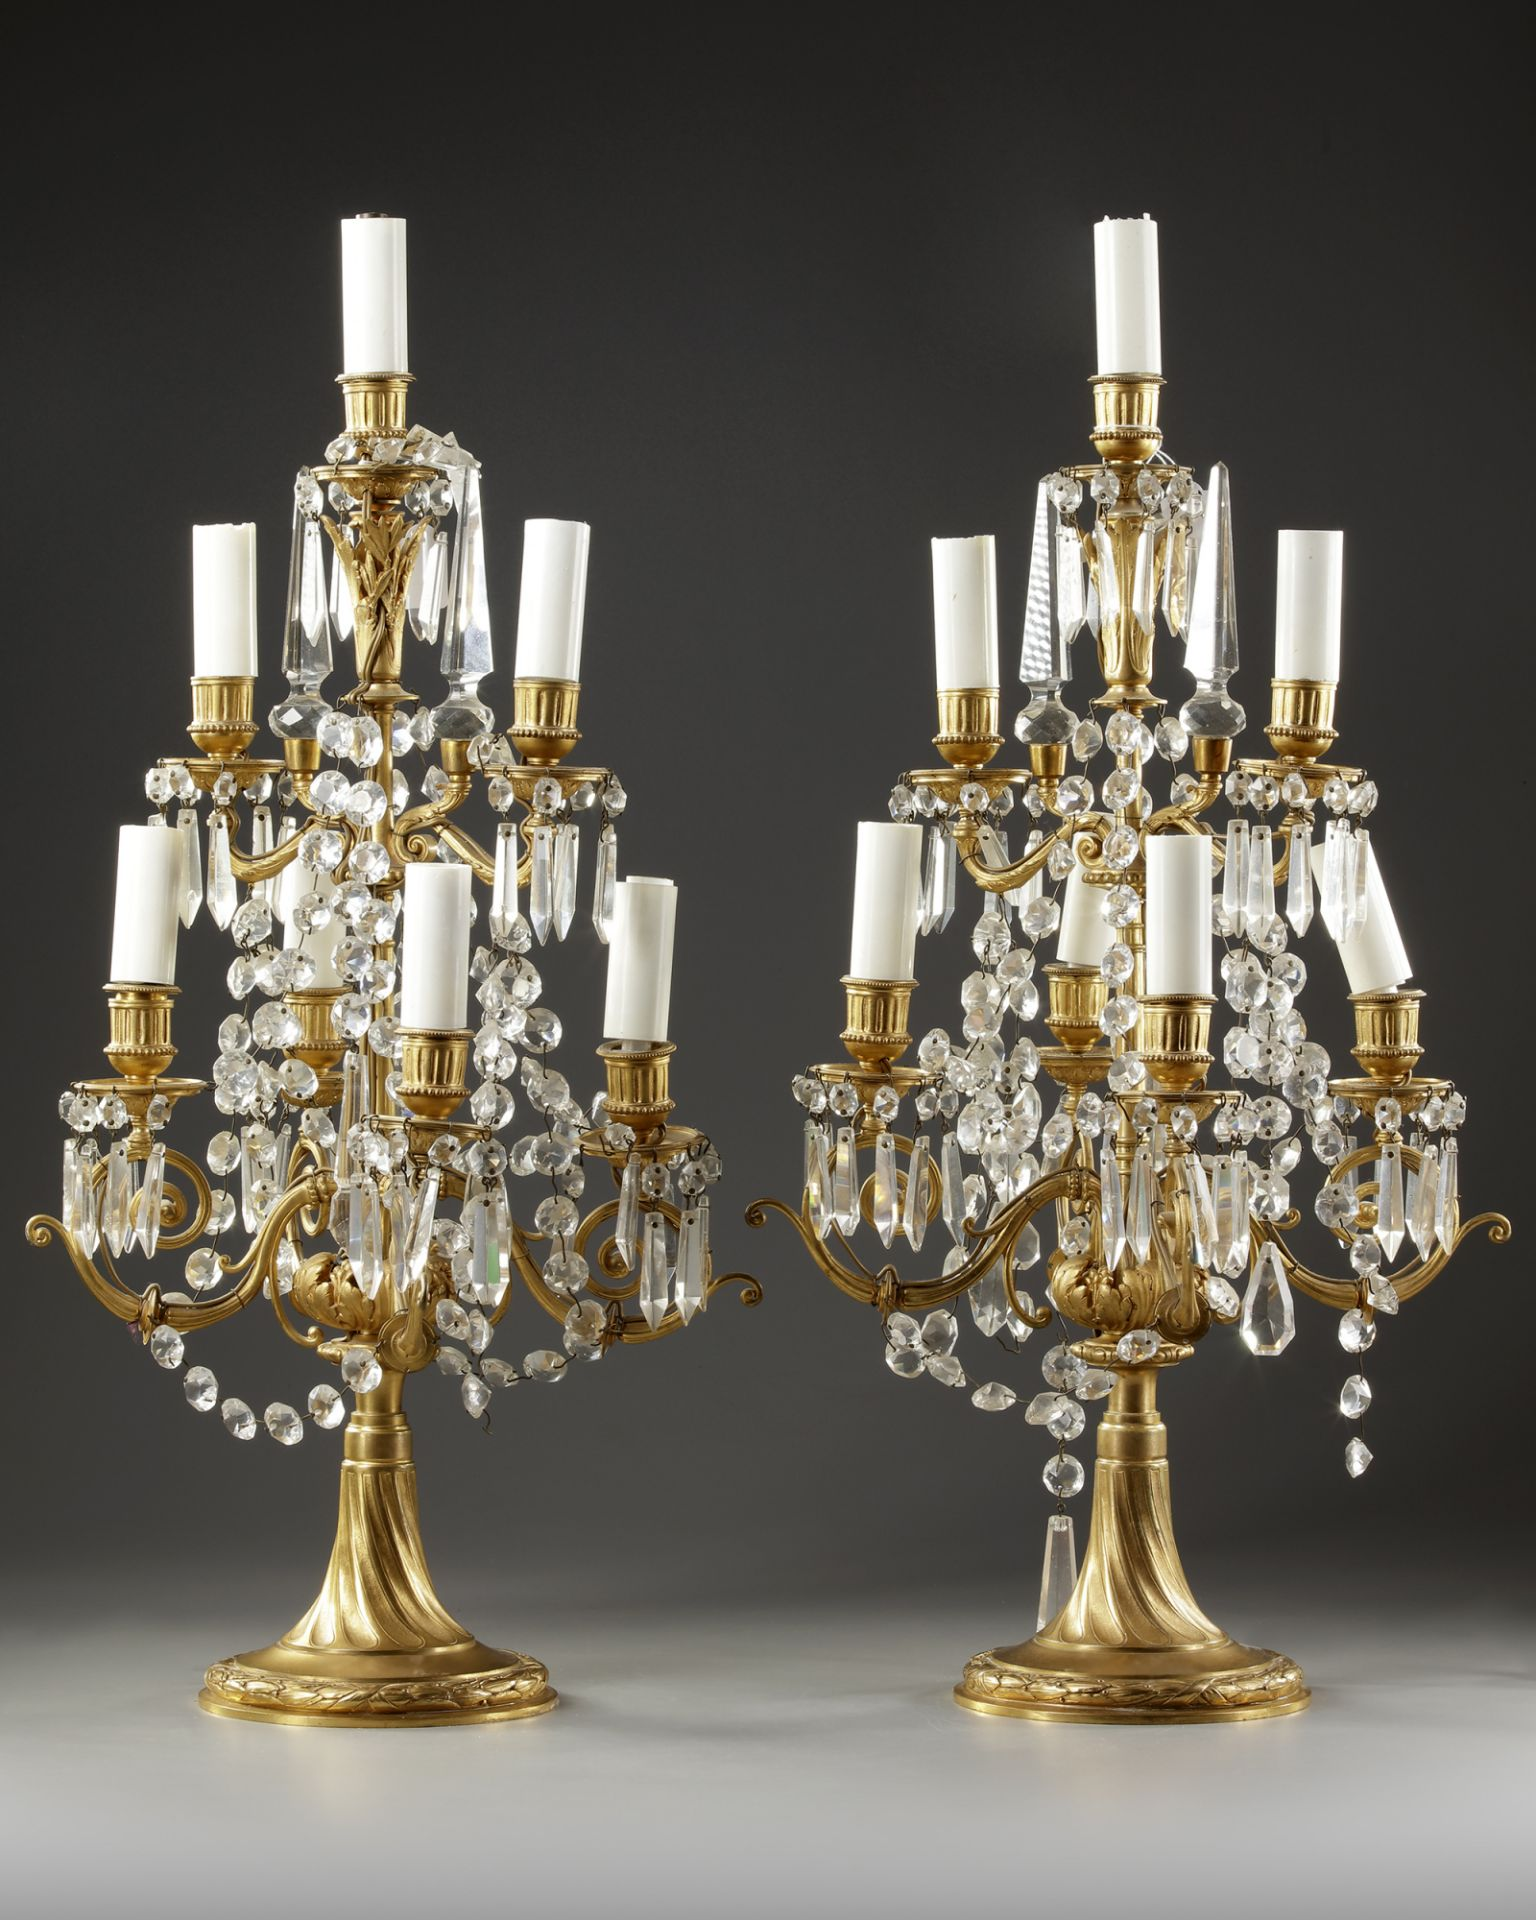 A PAIR OF FRENCH GIRANDOLES, LATE 19TH CENTURY